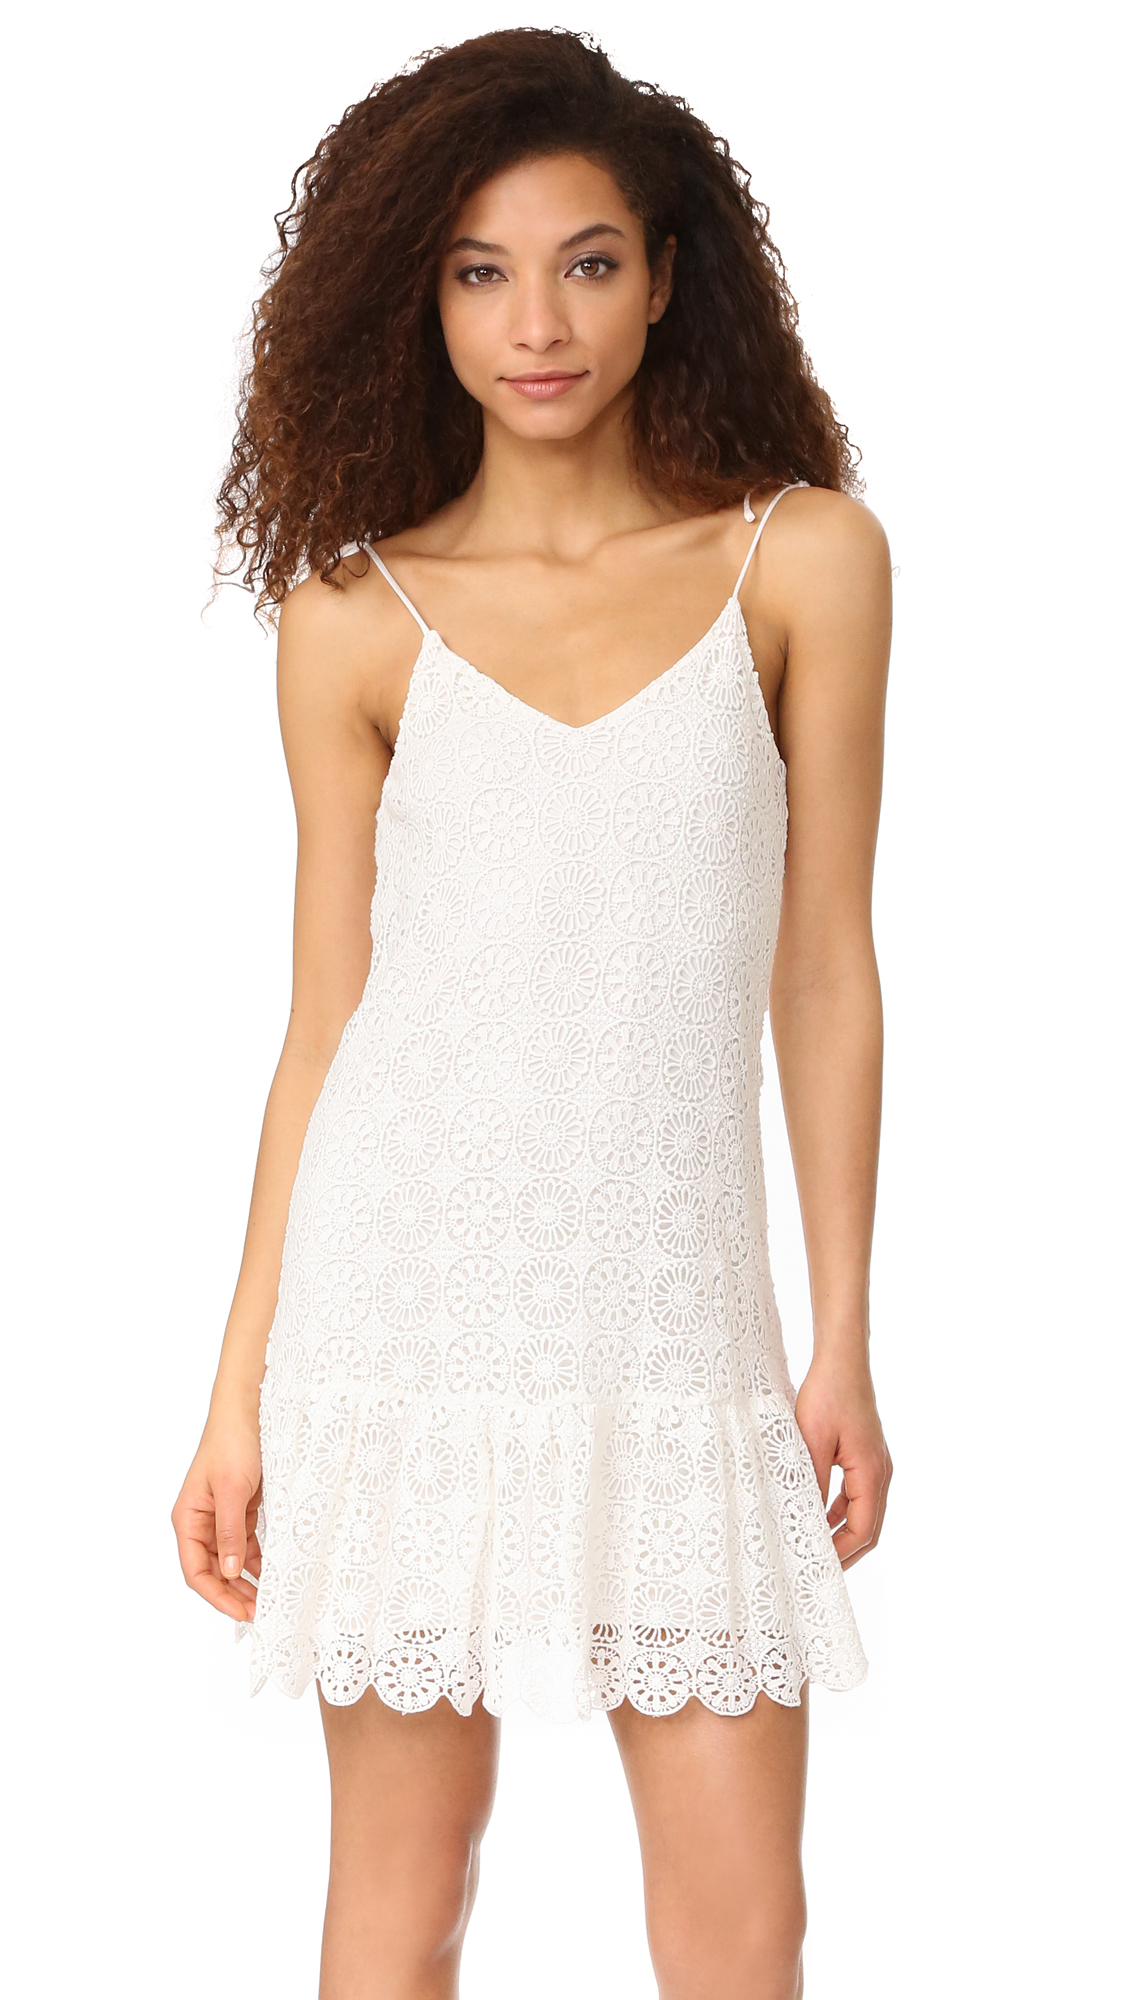 Ella Moss Medallion Crochet Dress